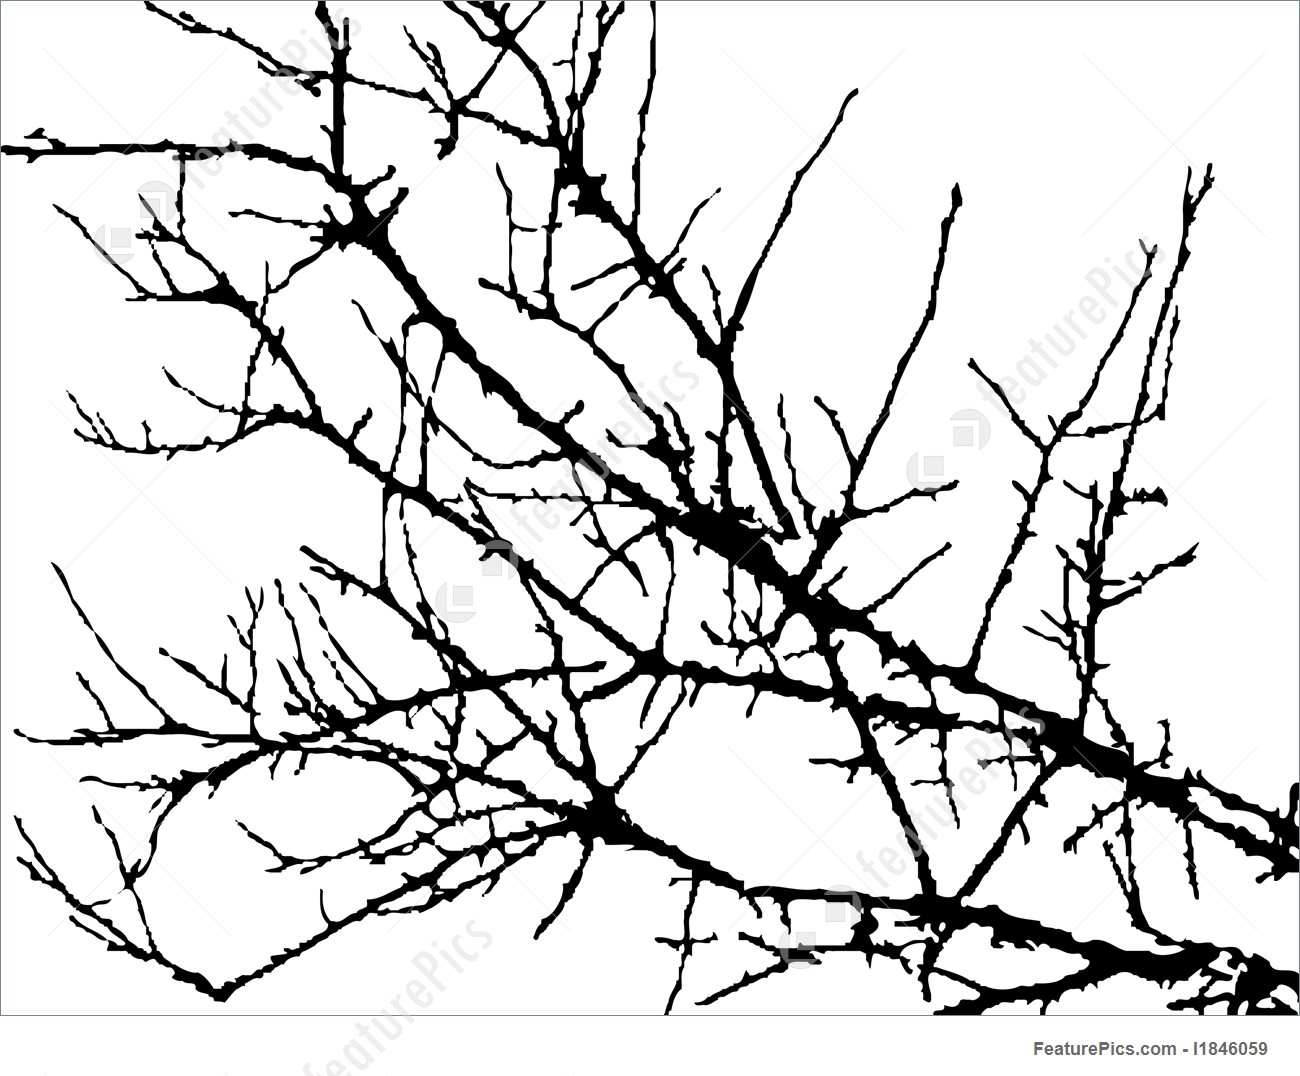 1300x1076 Illustration Of Silhouette Of Branches Of Tree